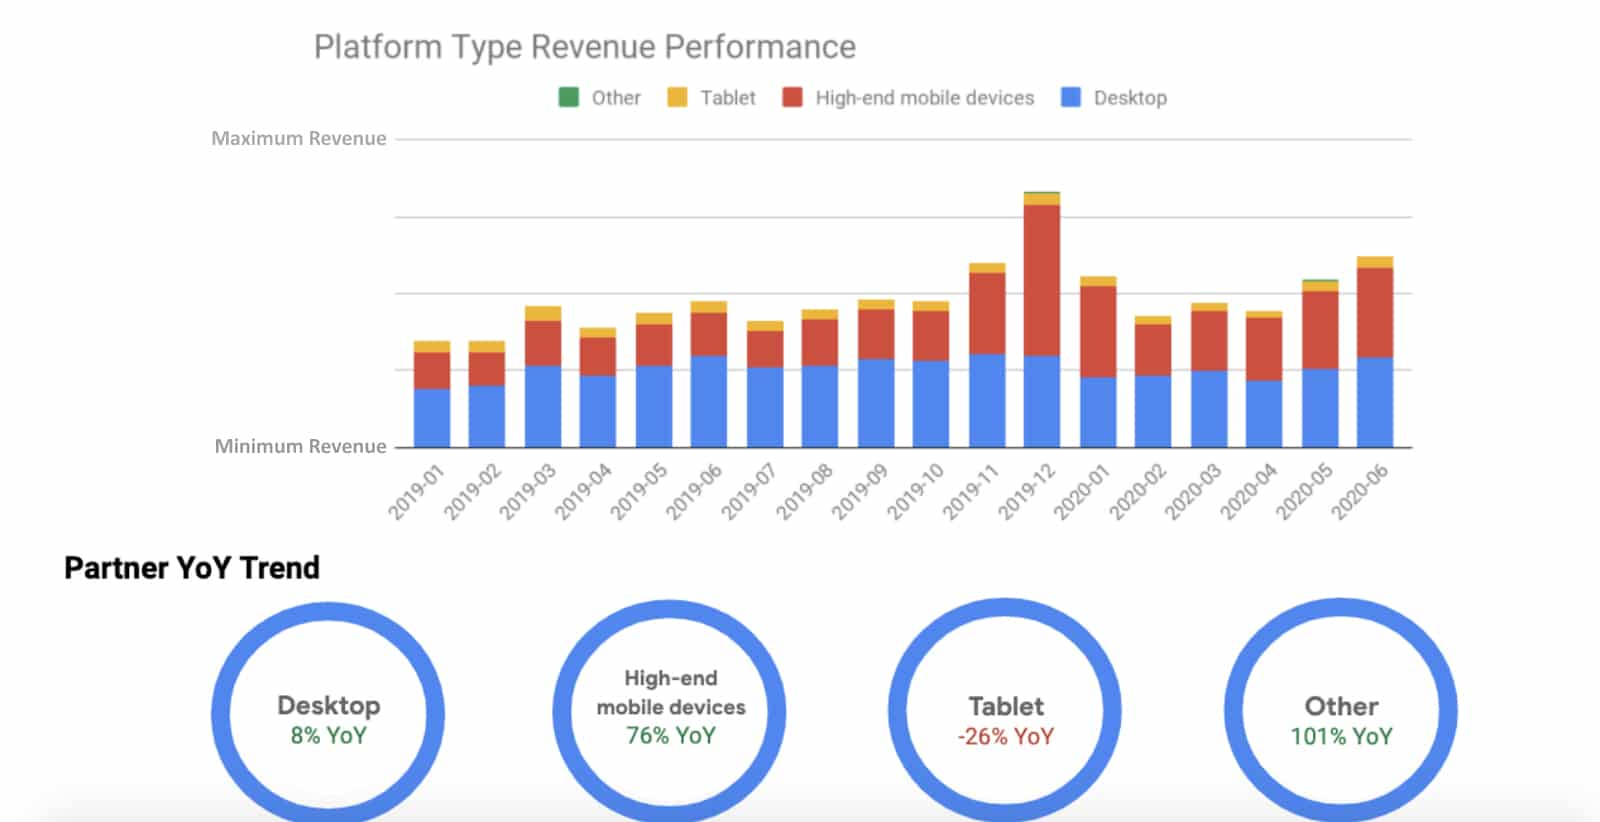 Comparison of ad revenue performance based on platform and device type